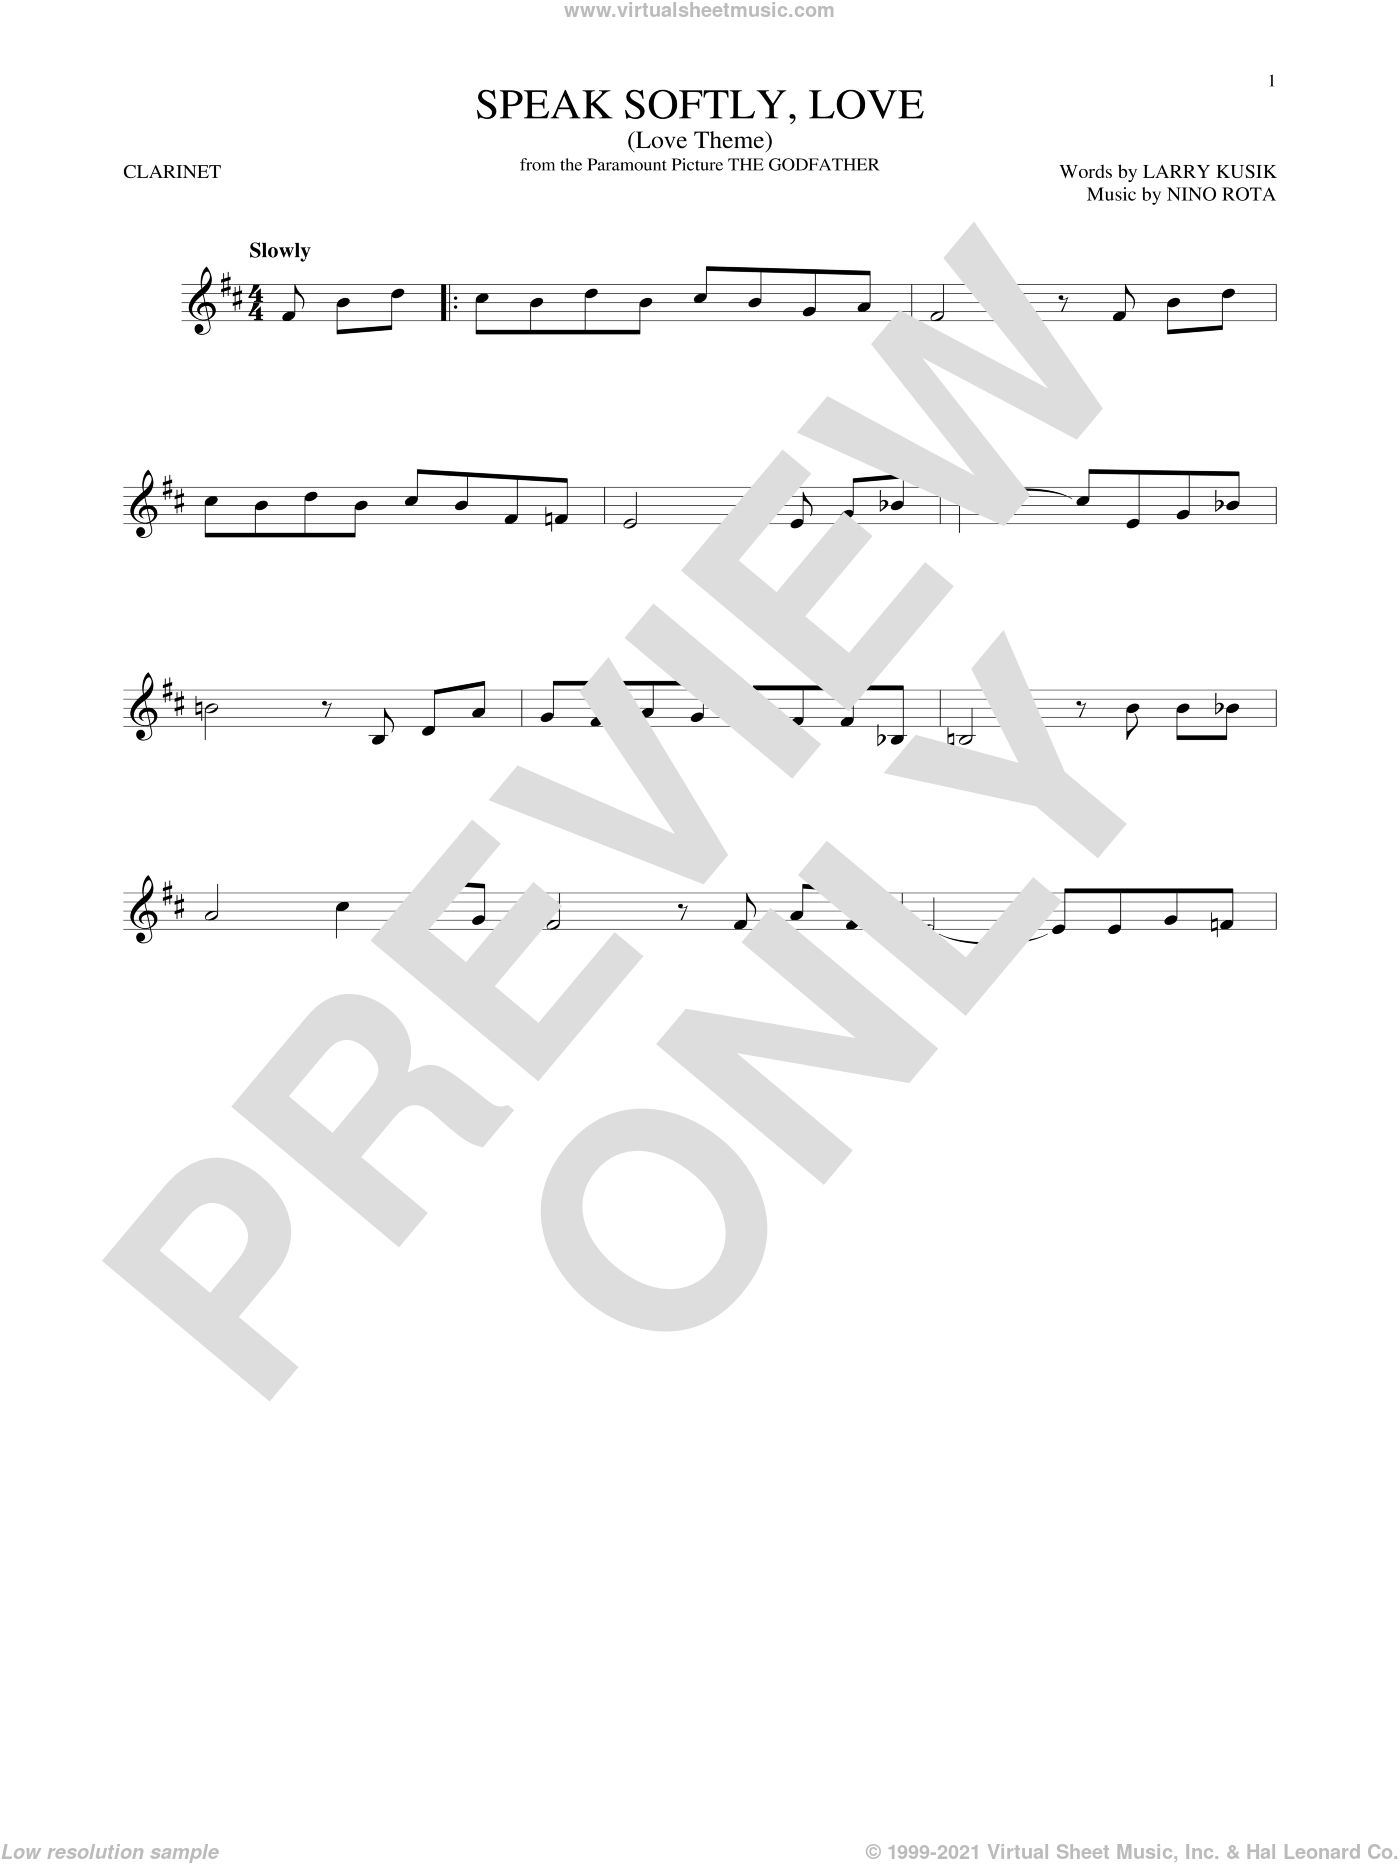 Speak Softly, Love (Love Theme) sheet music for clarinet solo by Andy Williams, Larry Kusik and Nino Rota, intermediate skill level